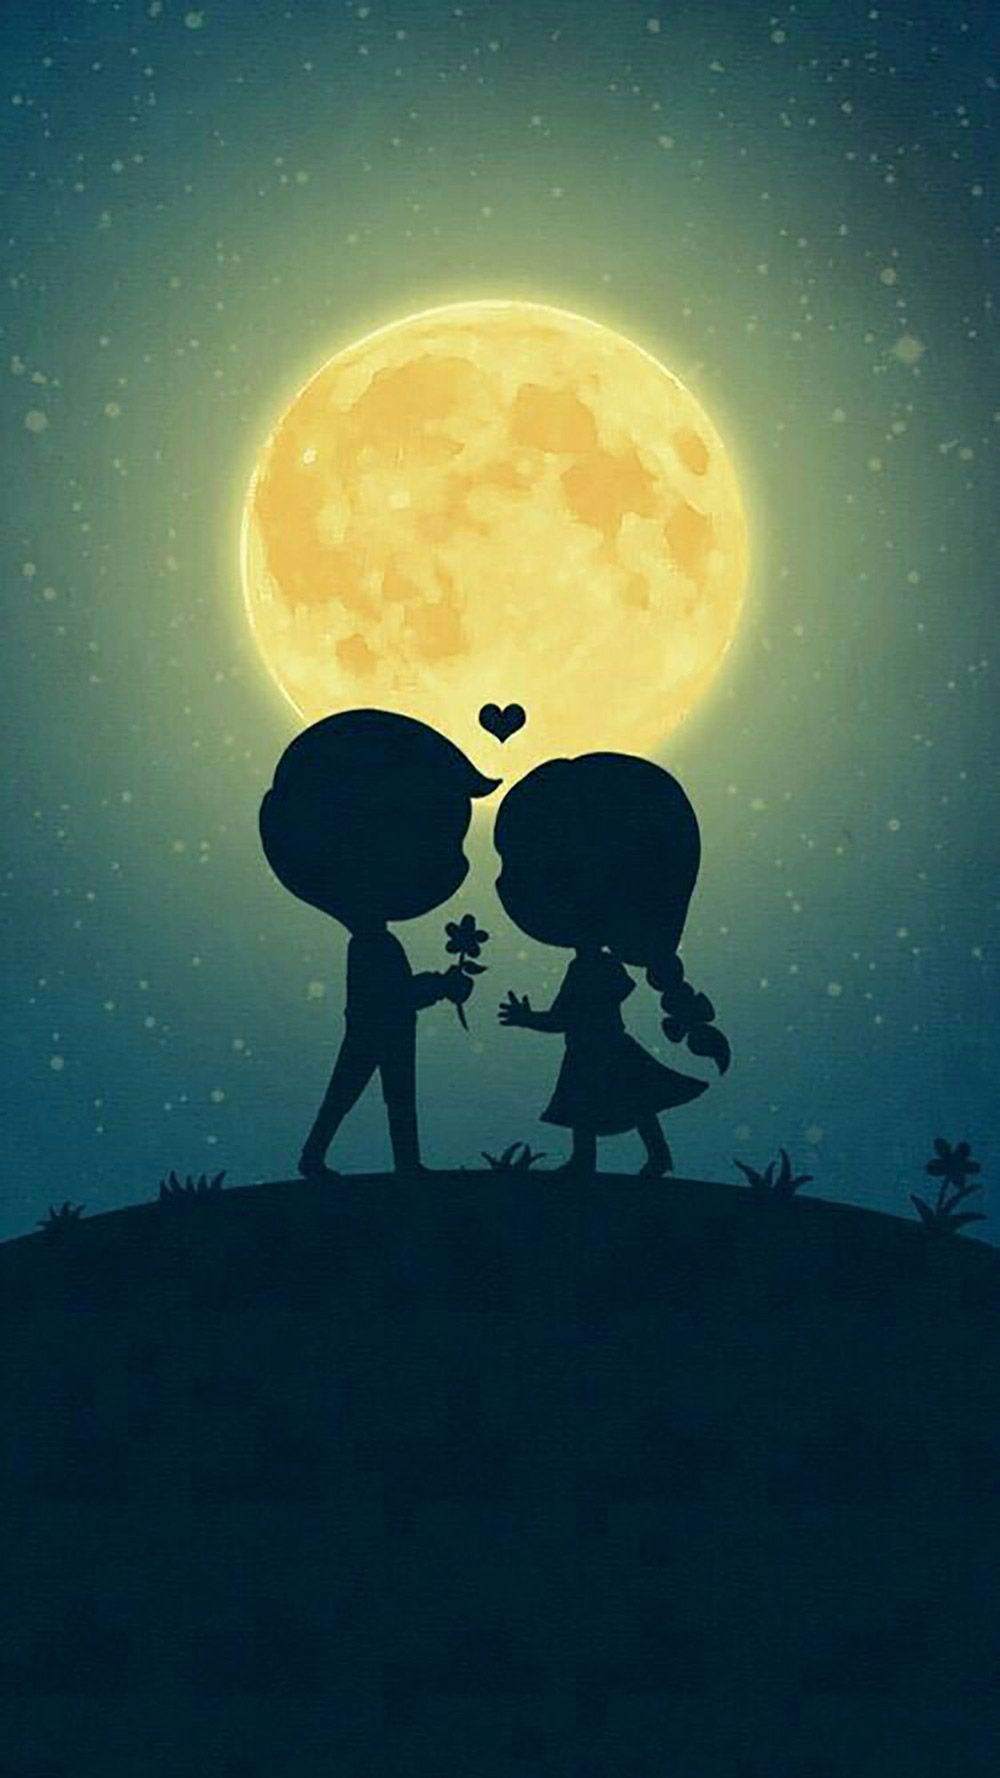 20 Hand Picked Valentine S Day Mobile Wallpapers Hongkiat Cute Love Wallpapers Cute Couple Wallpaper Love Wallpapers Romantic